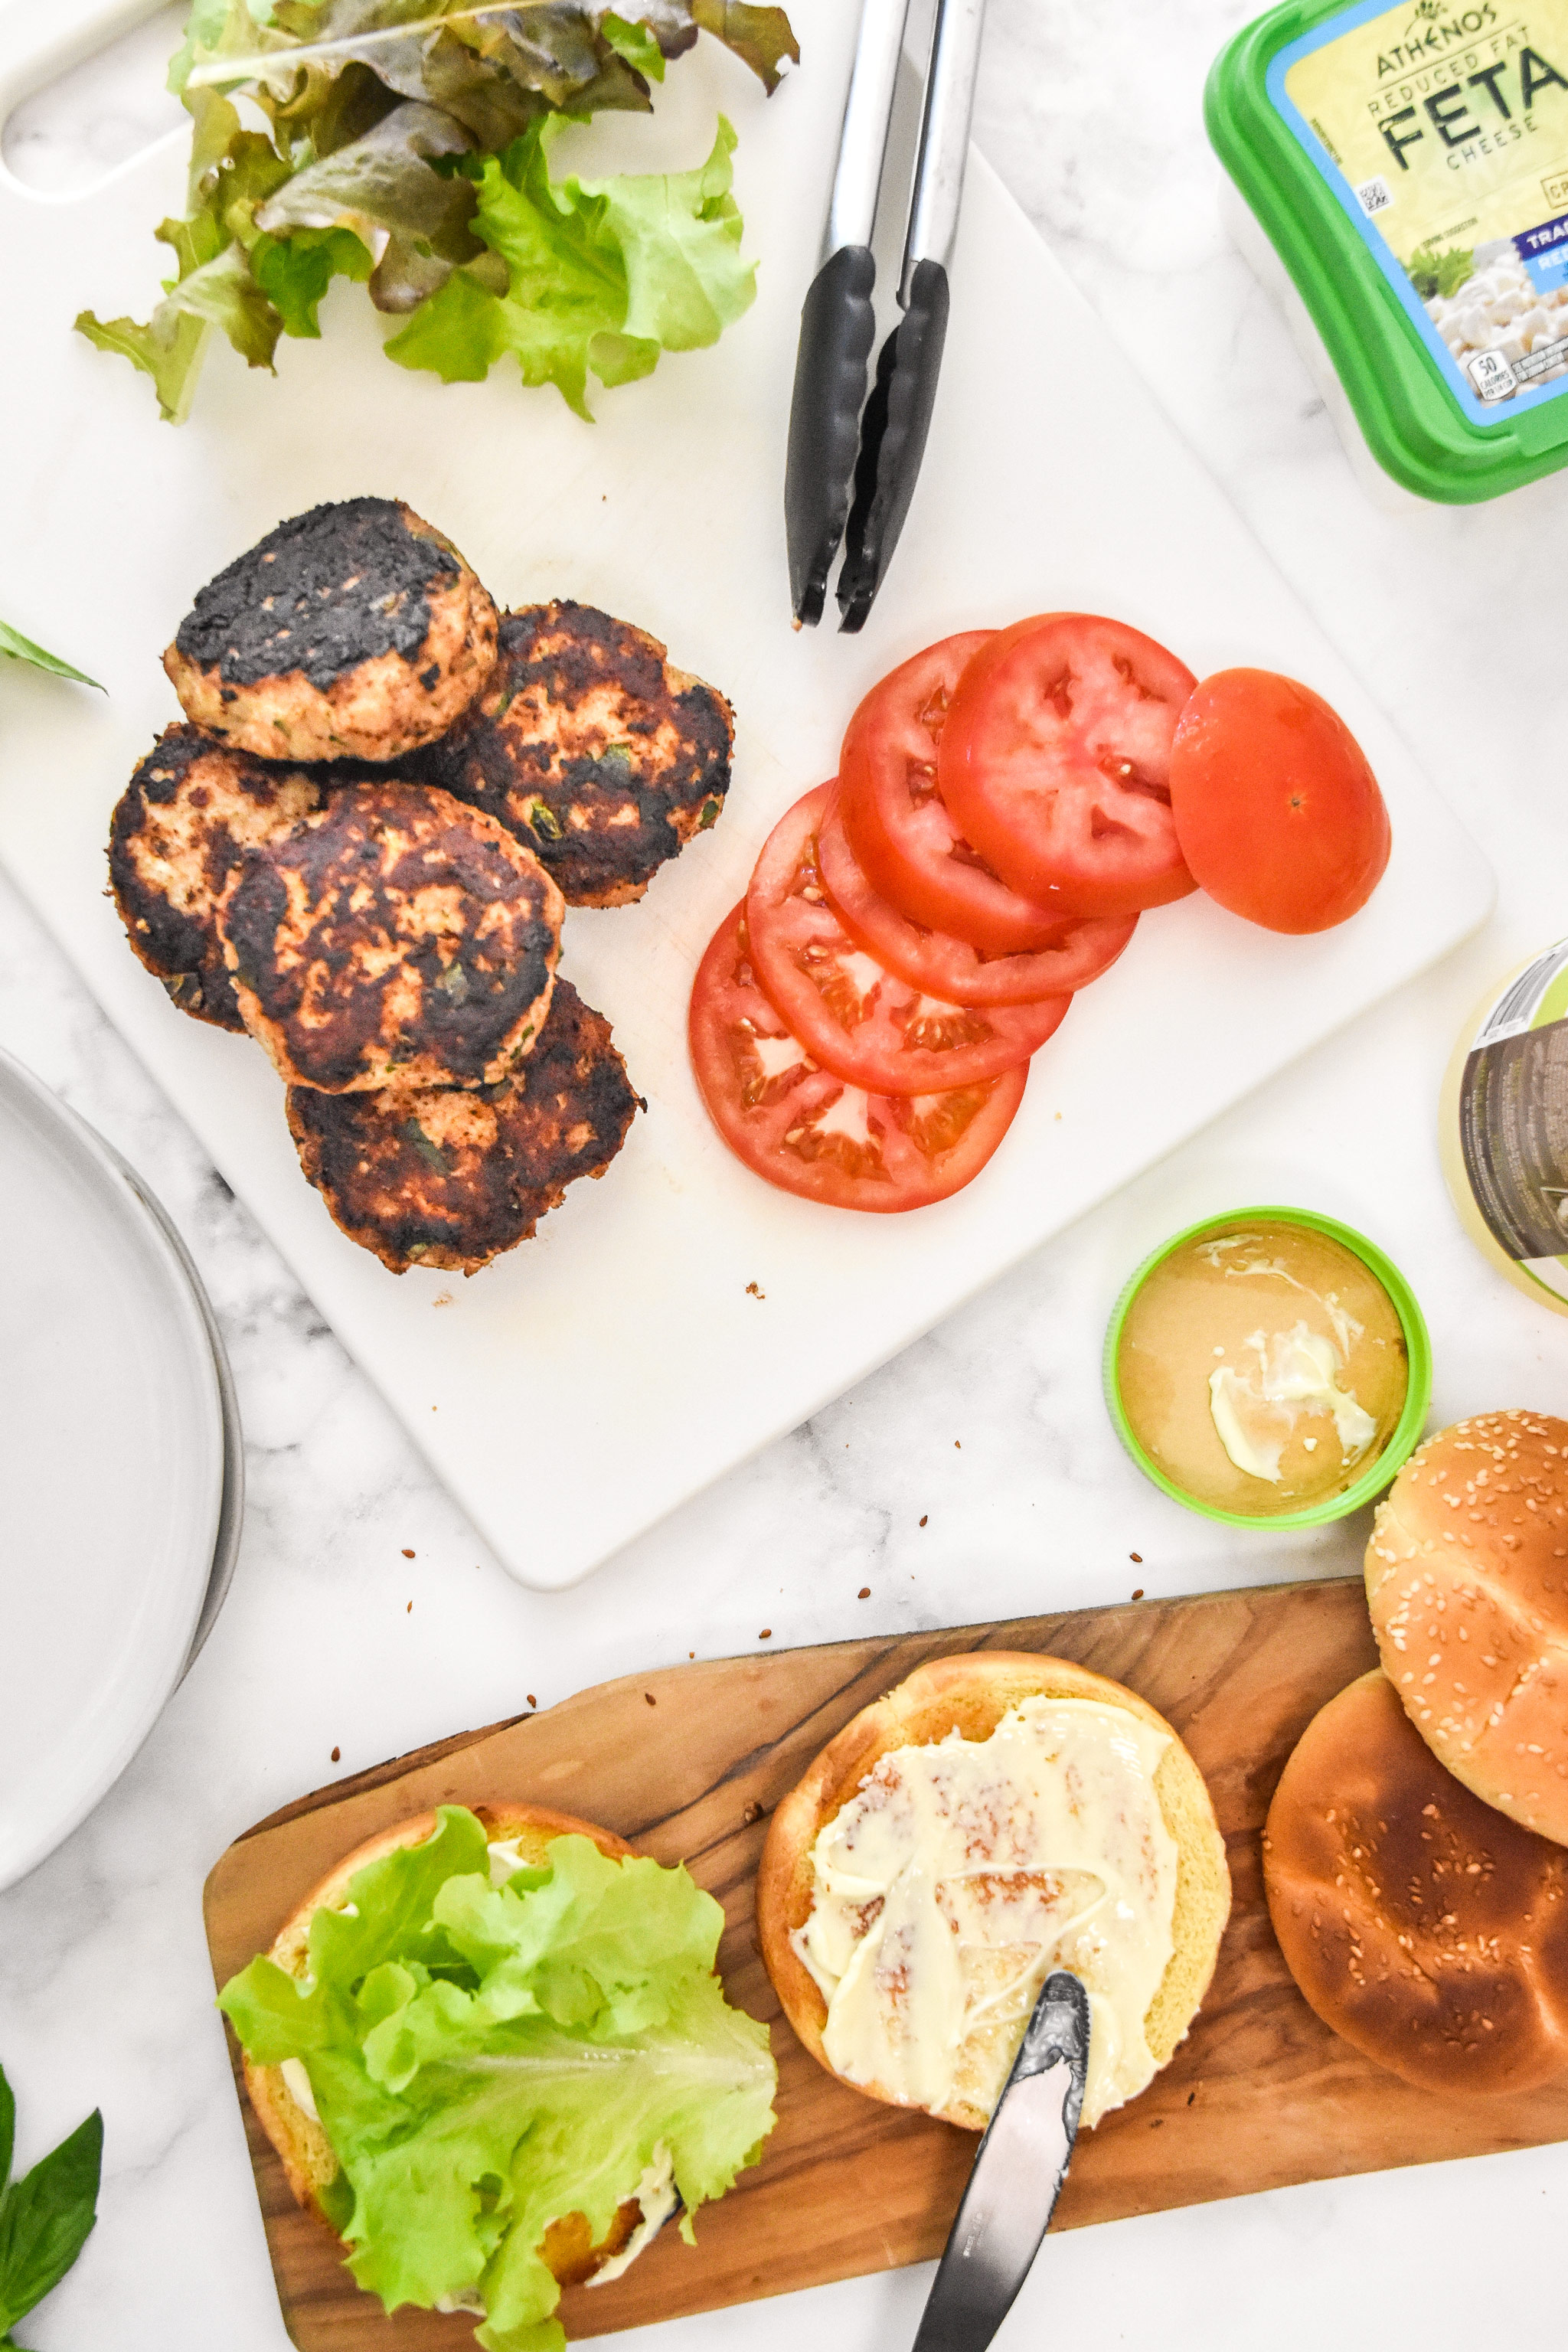 burger toppings, cooked burgers and buns on cutting boards.